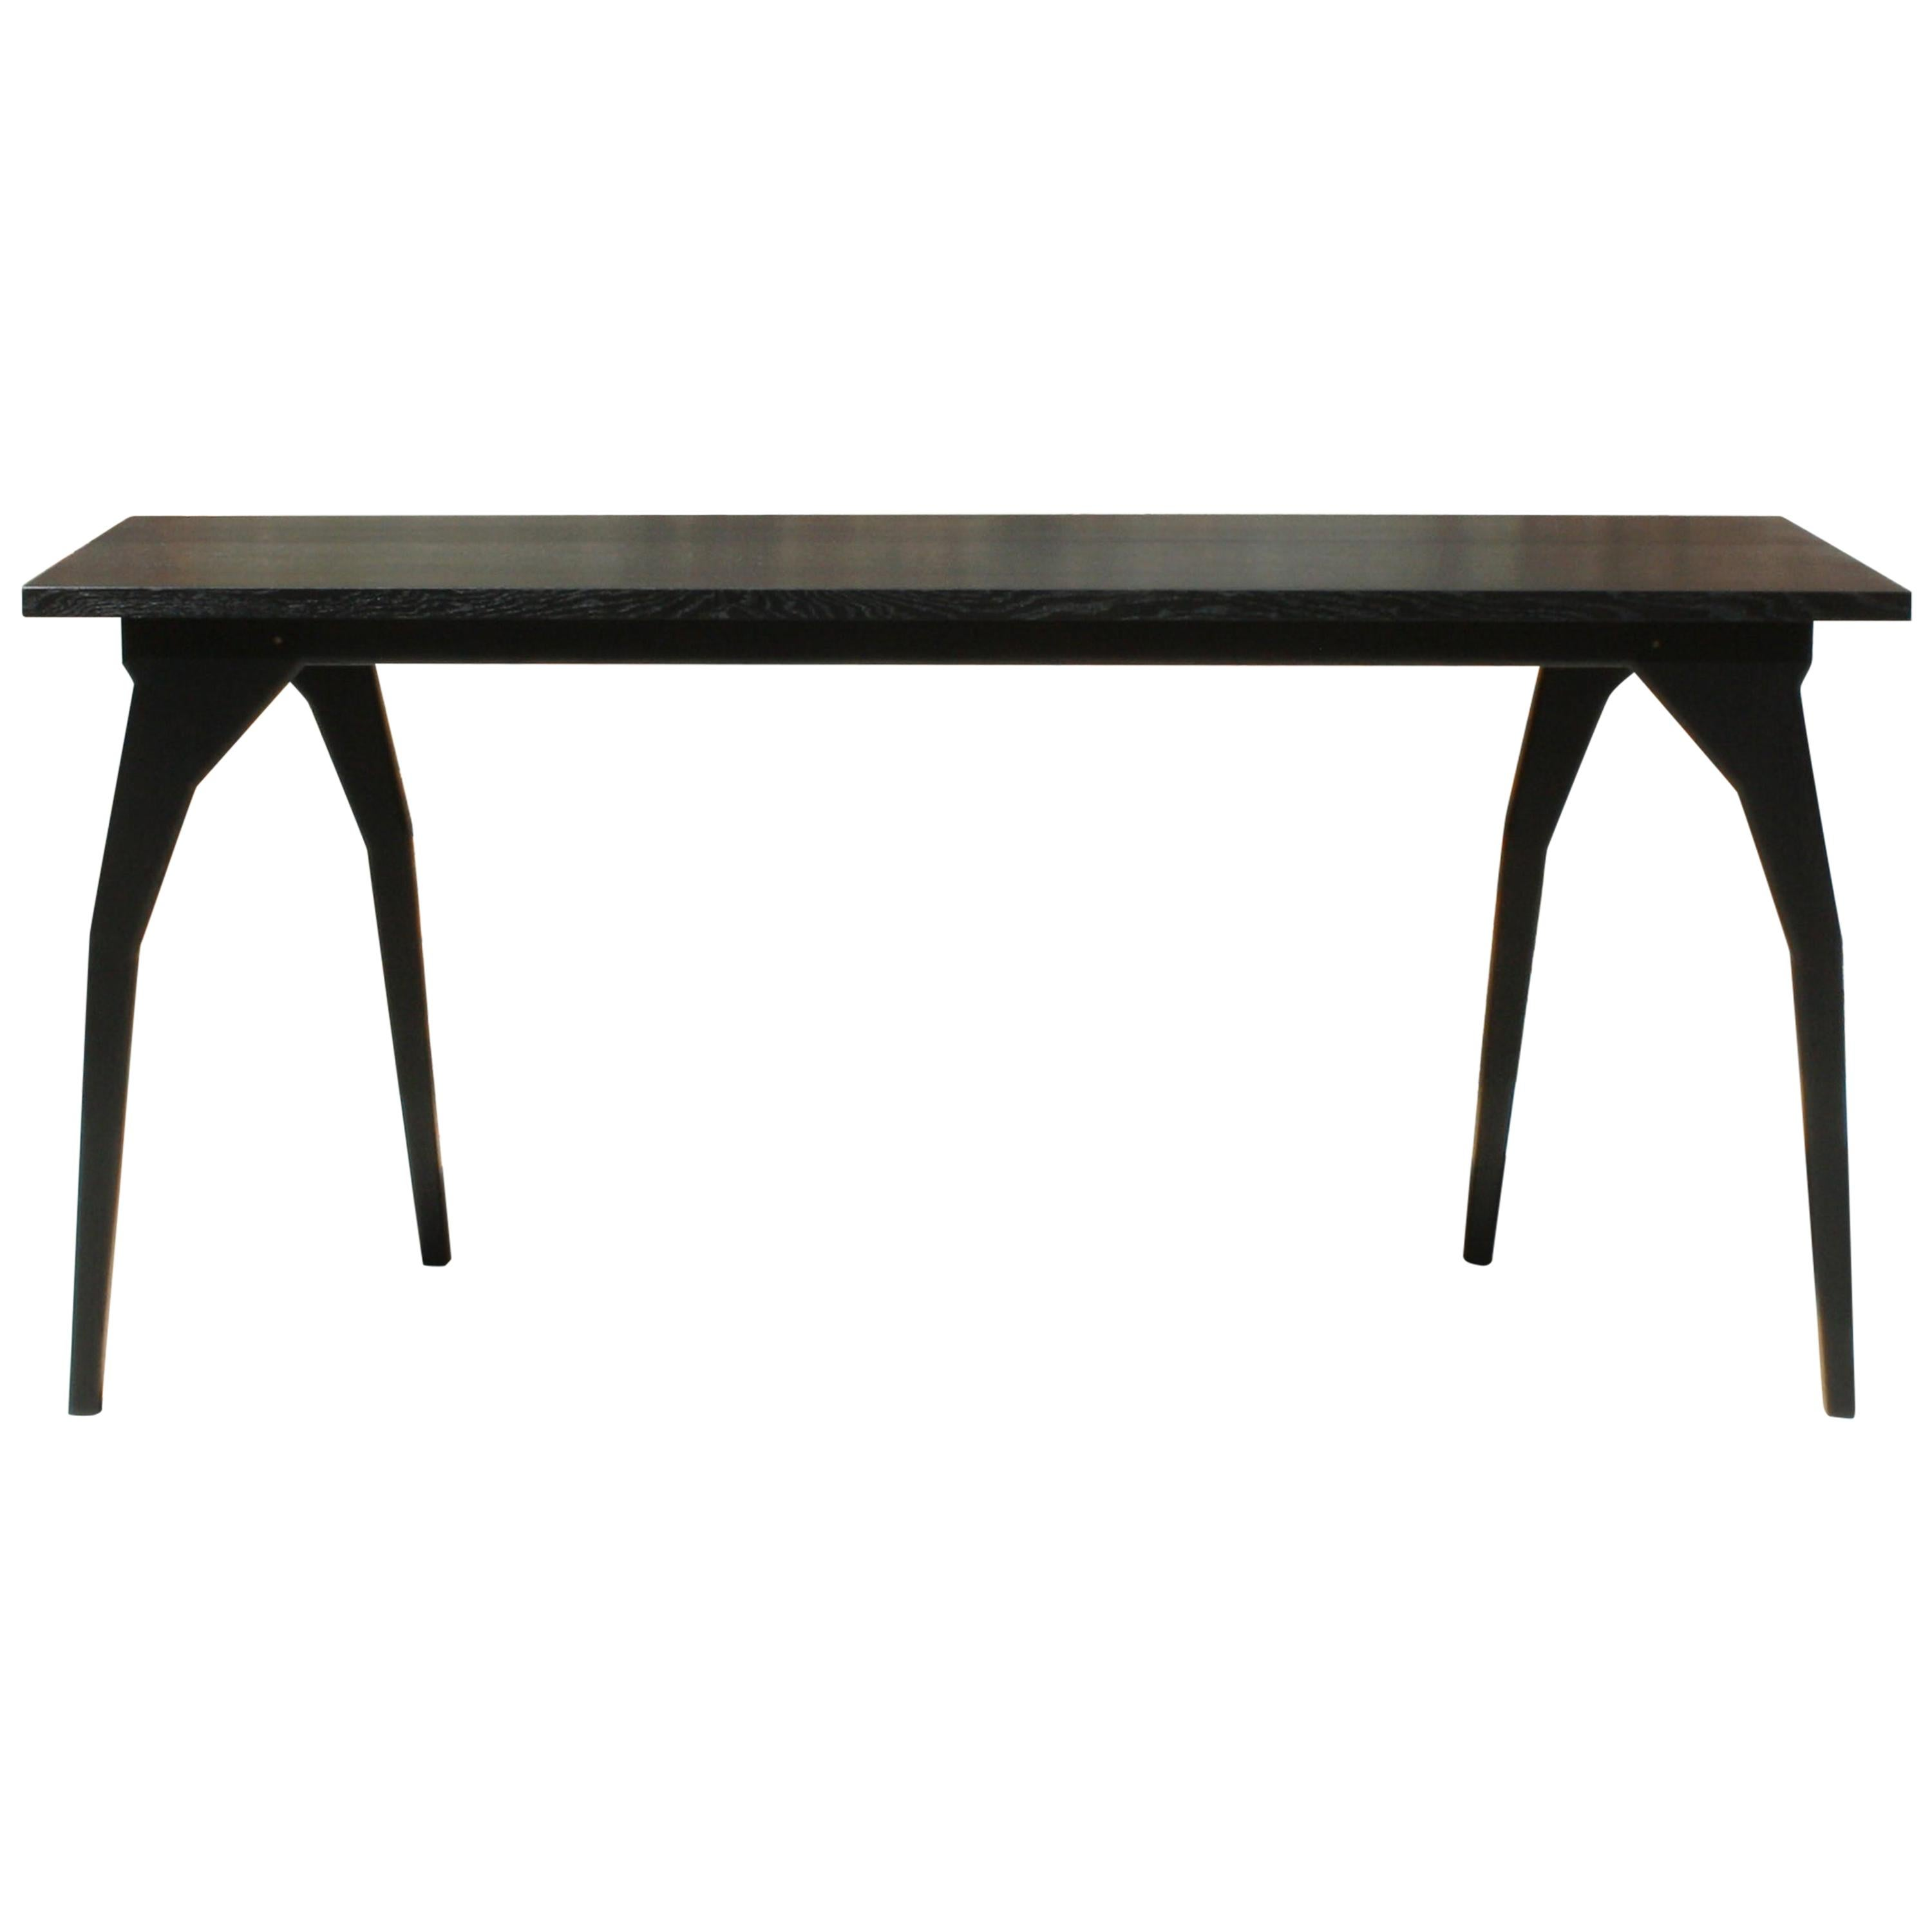 Walking Table Handmade Customizable Console Table or Desk by Laylo Studio